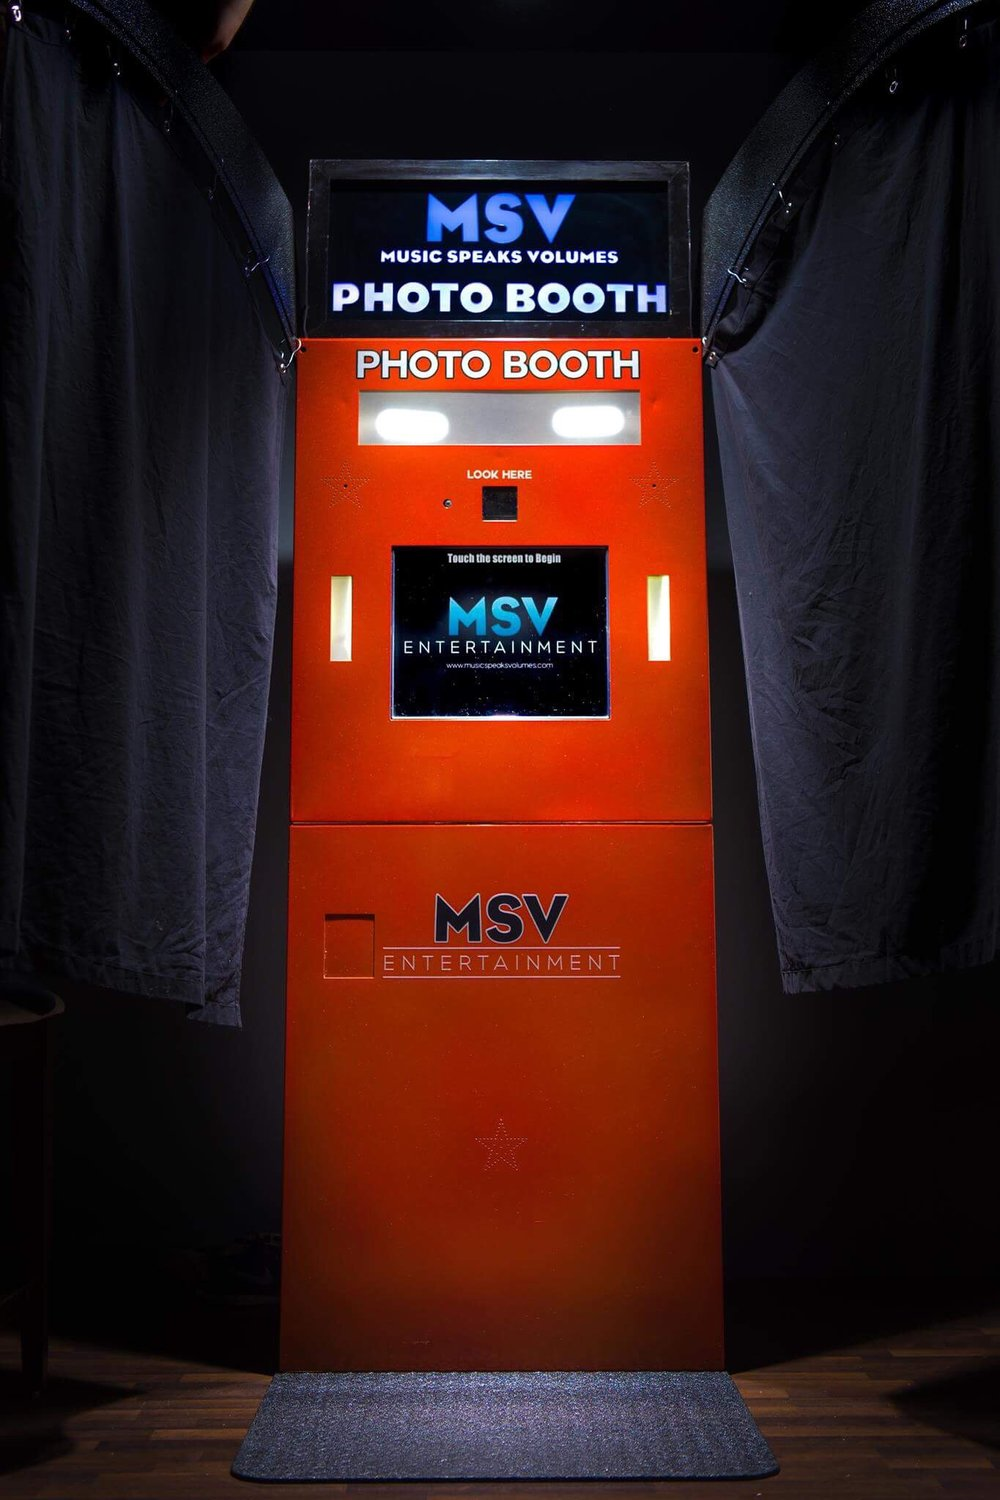 #1 Hudson Valley photo booth company